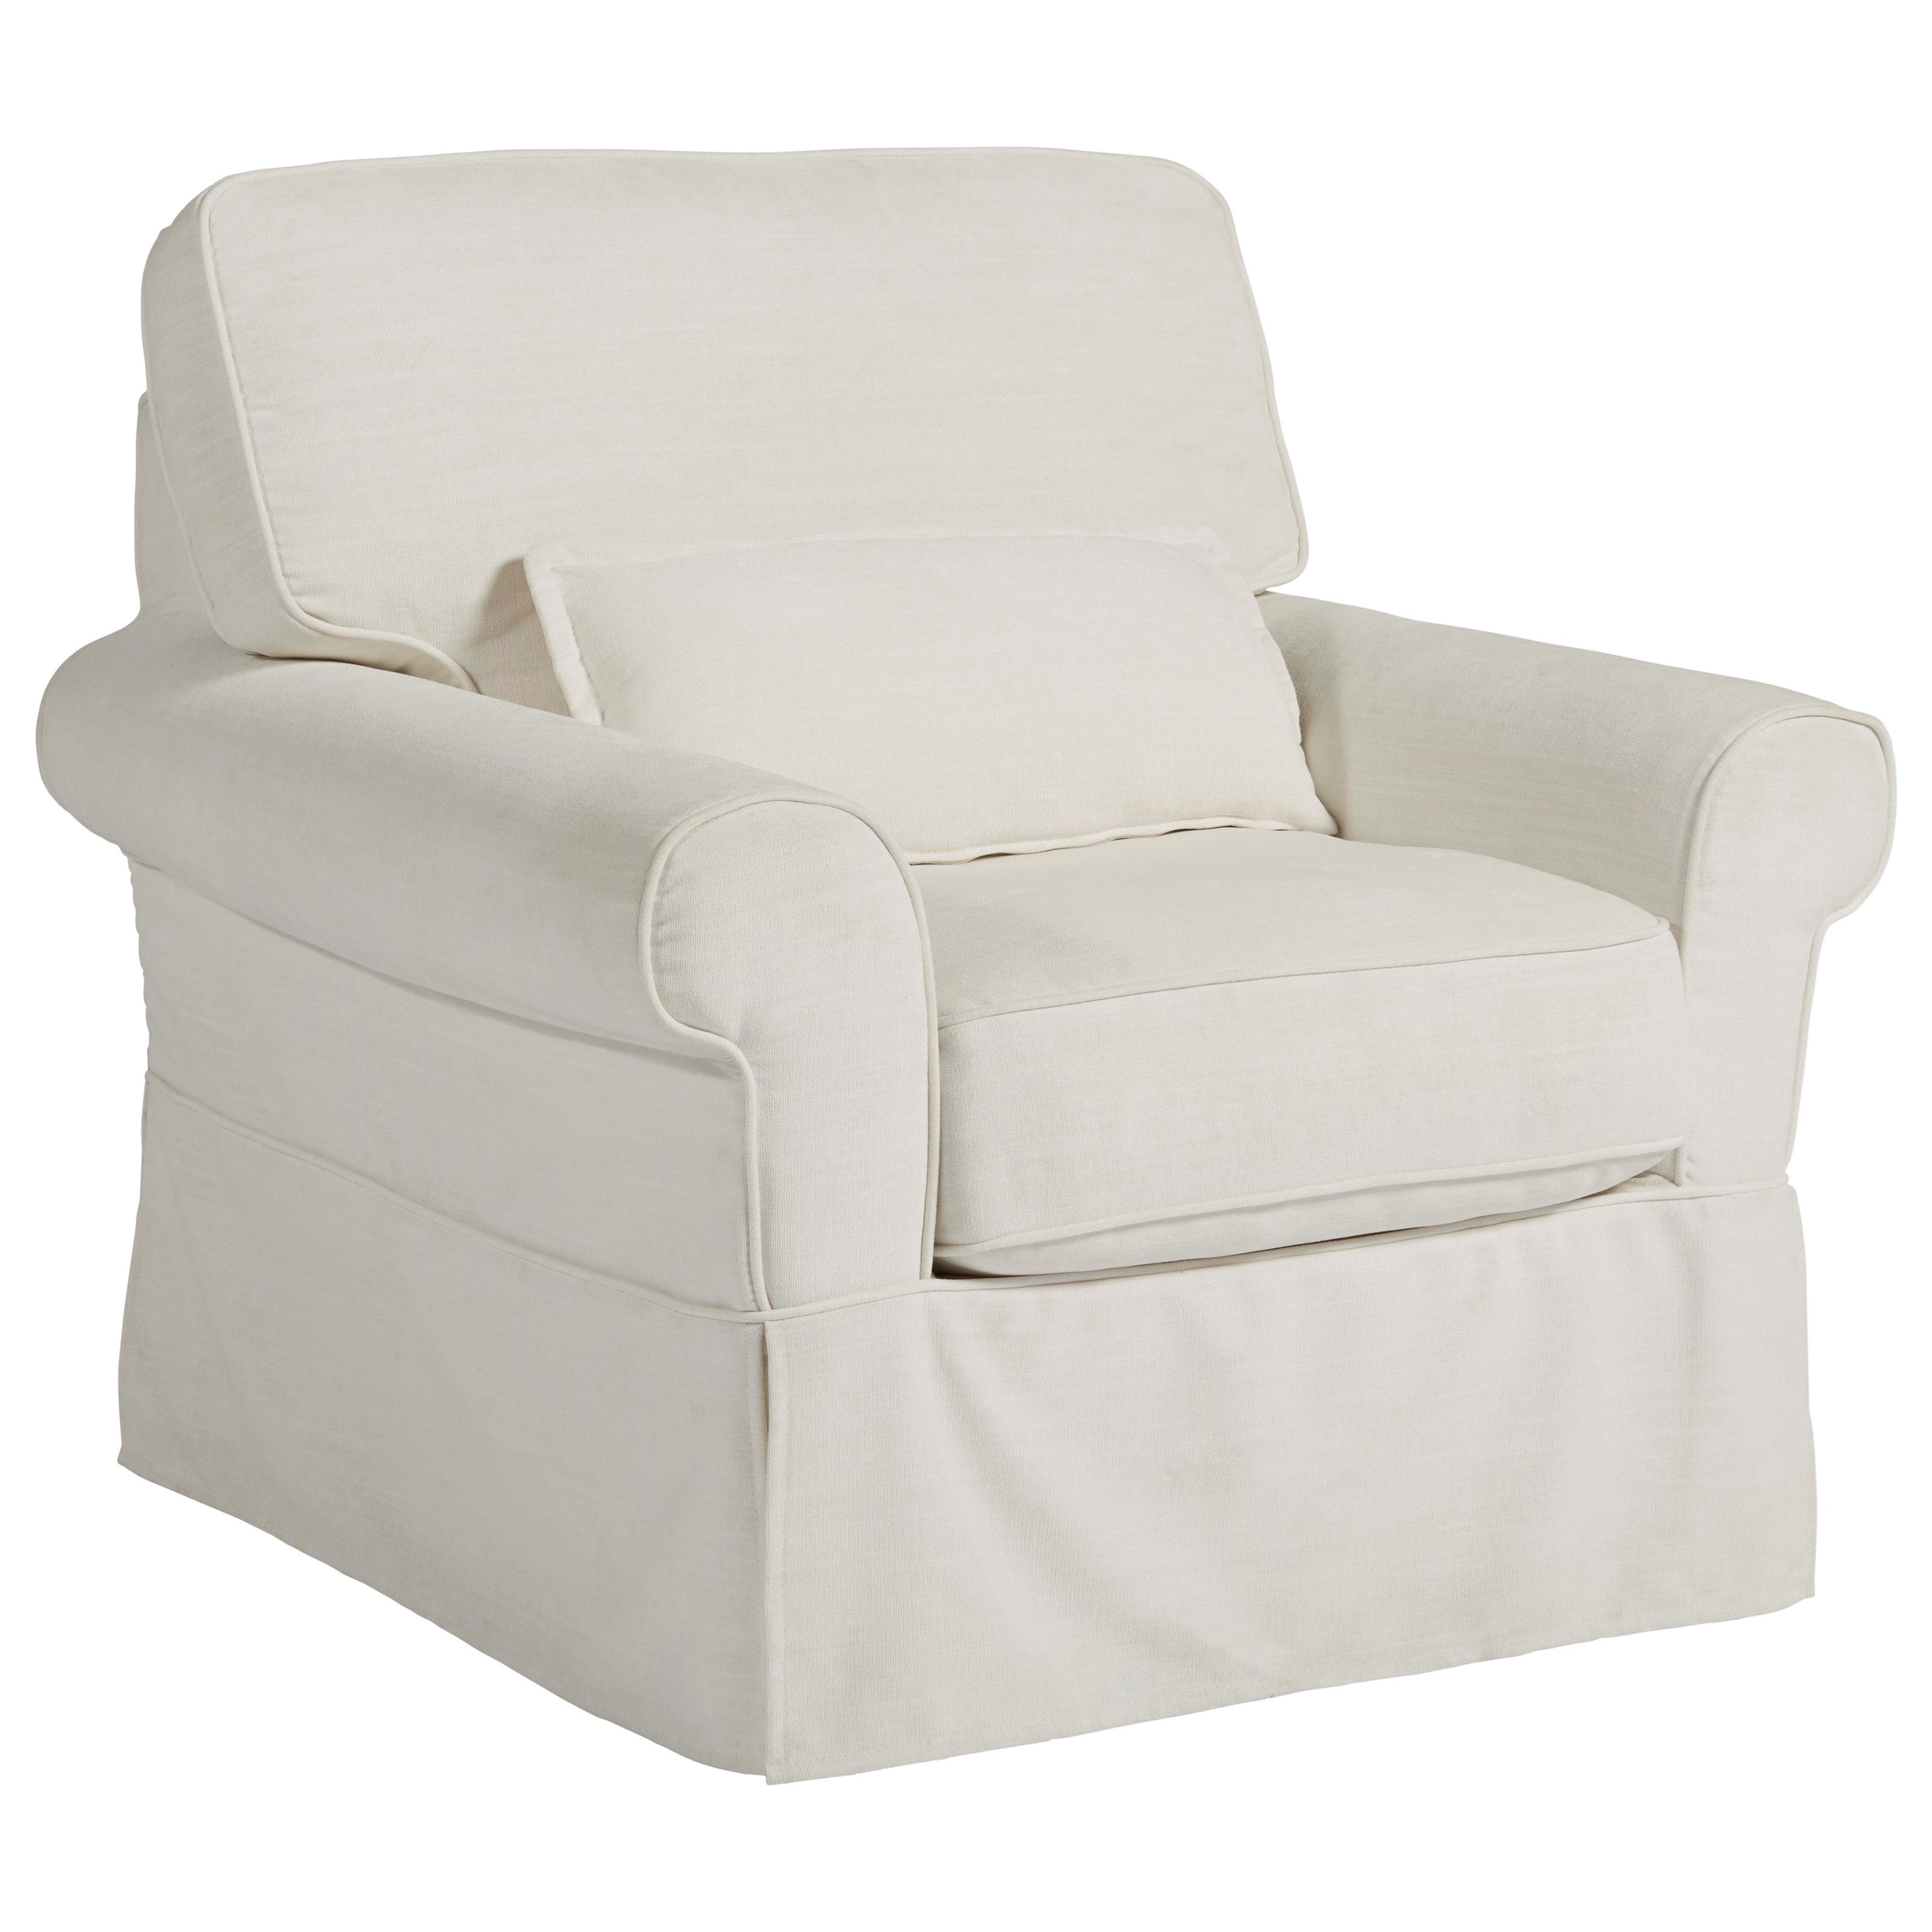 Coastal Living Home - Escape Ventura Chair by Universal at Baer's Furniture